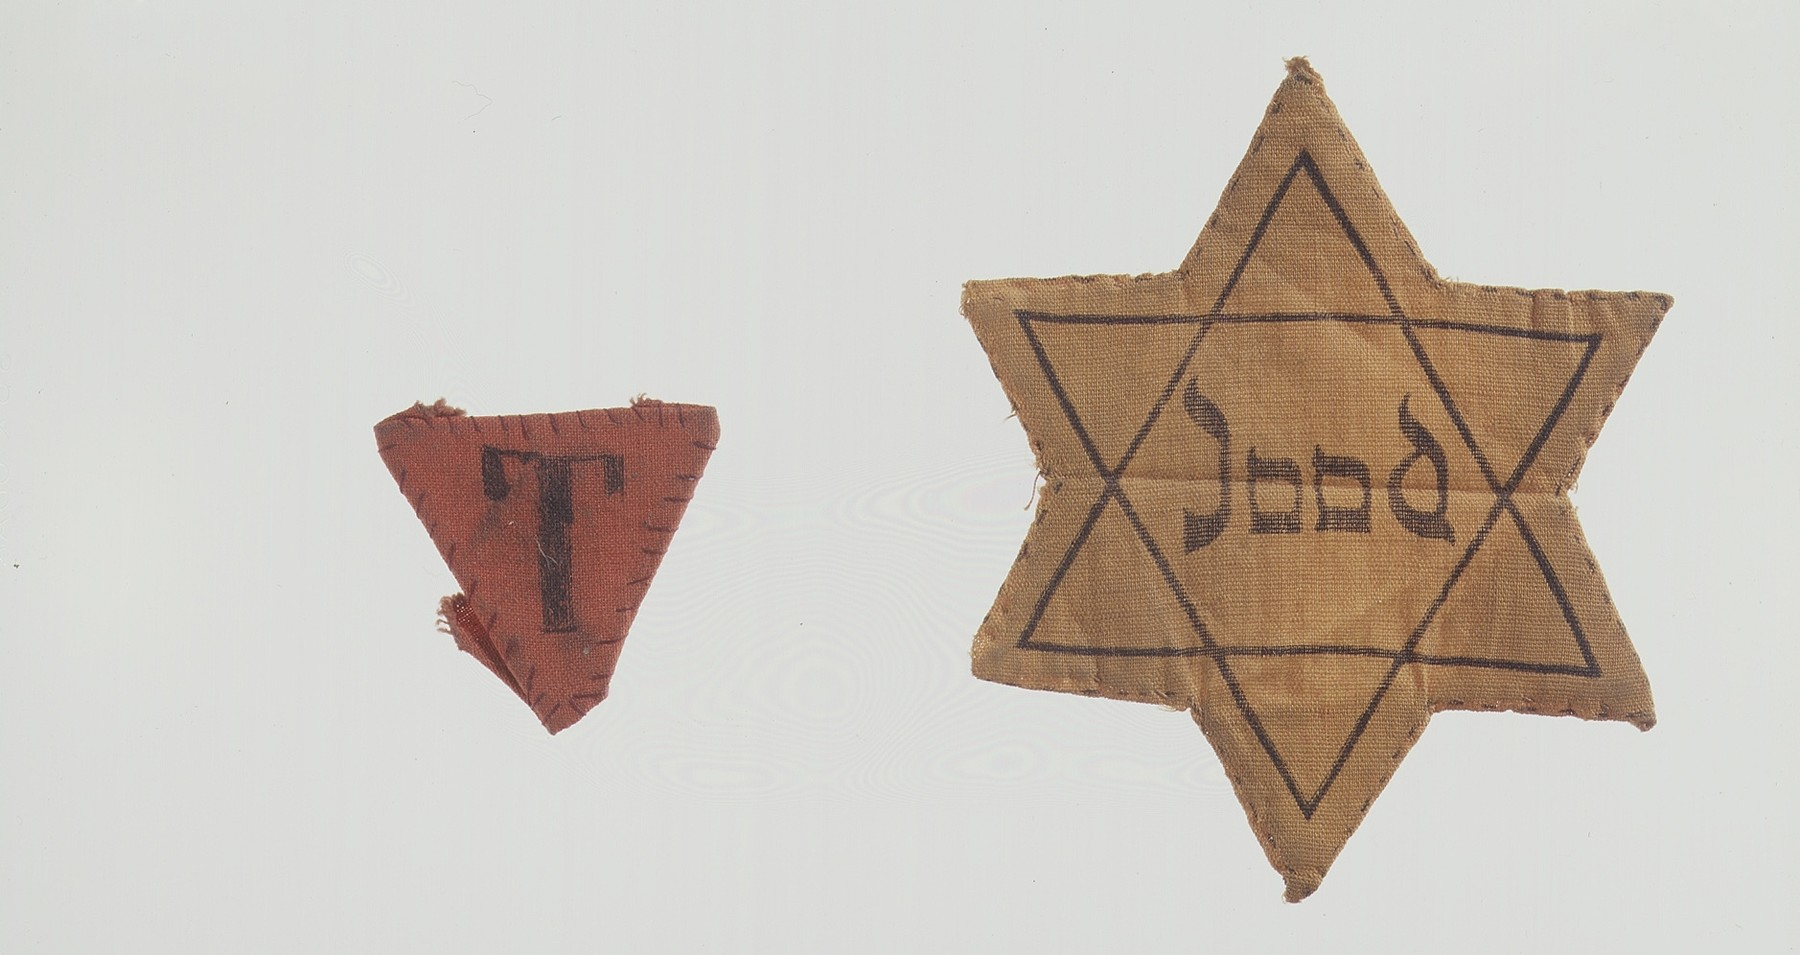 Composite photograph of two badges: (1) a triangular concentration camp prisoner badge with the letter T for Tschechoslowakei (Czech) issued to Czech political prisoner Karl Bruml, and (2) a Dutch Jewish star with the word Jood (Jew) printed on it.